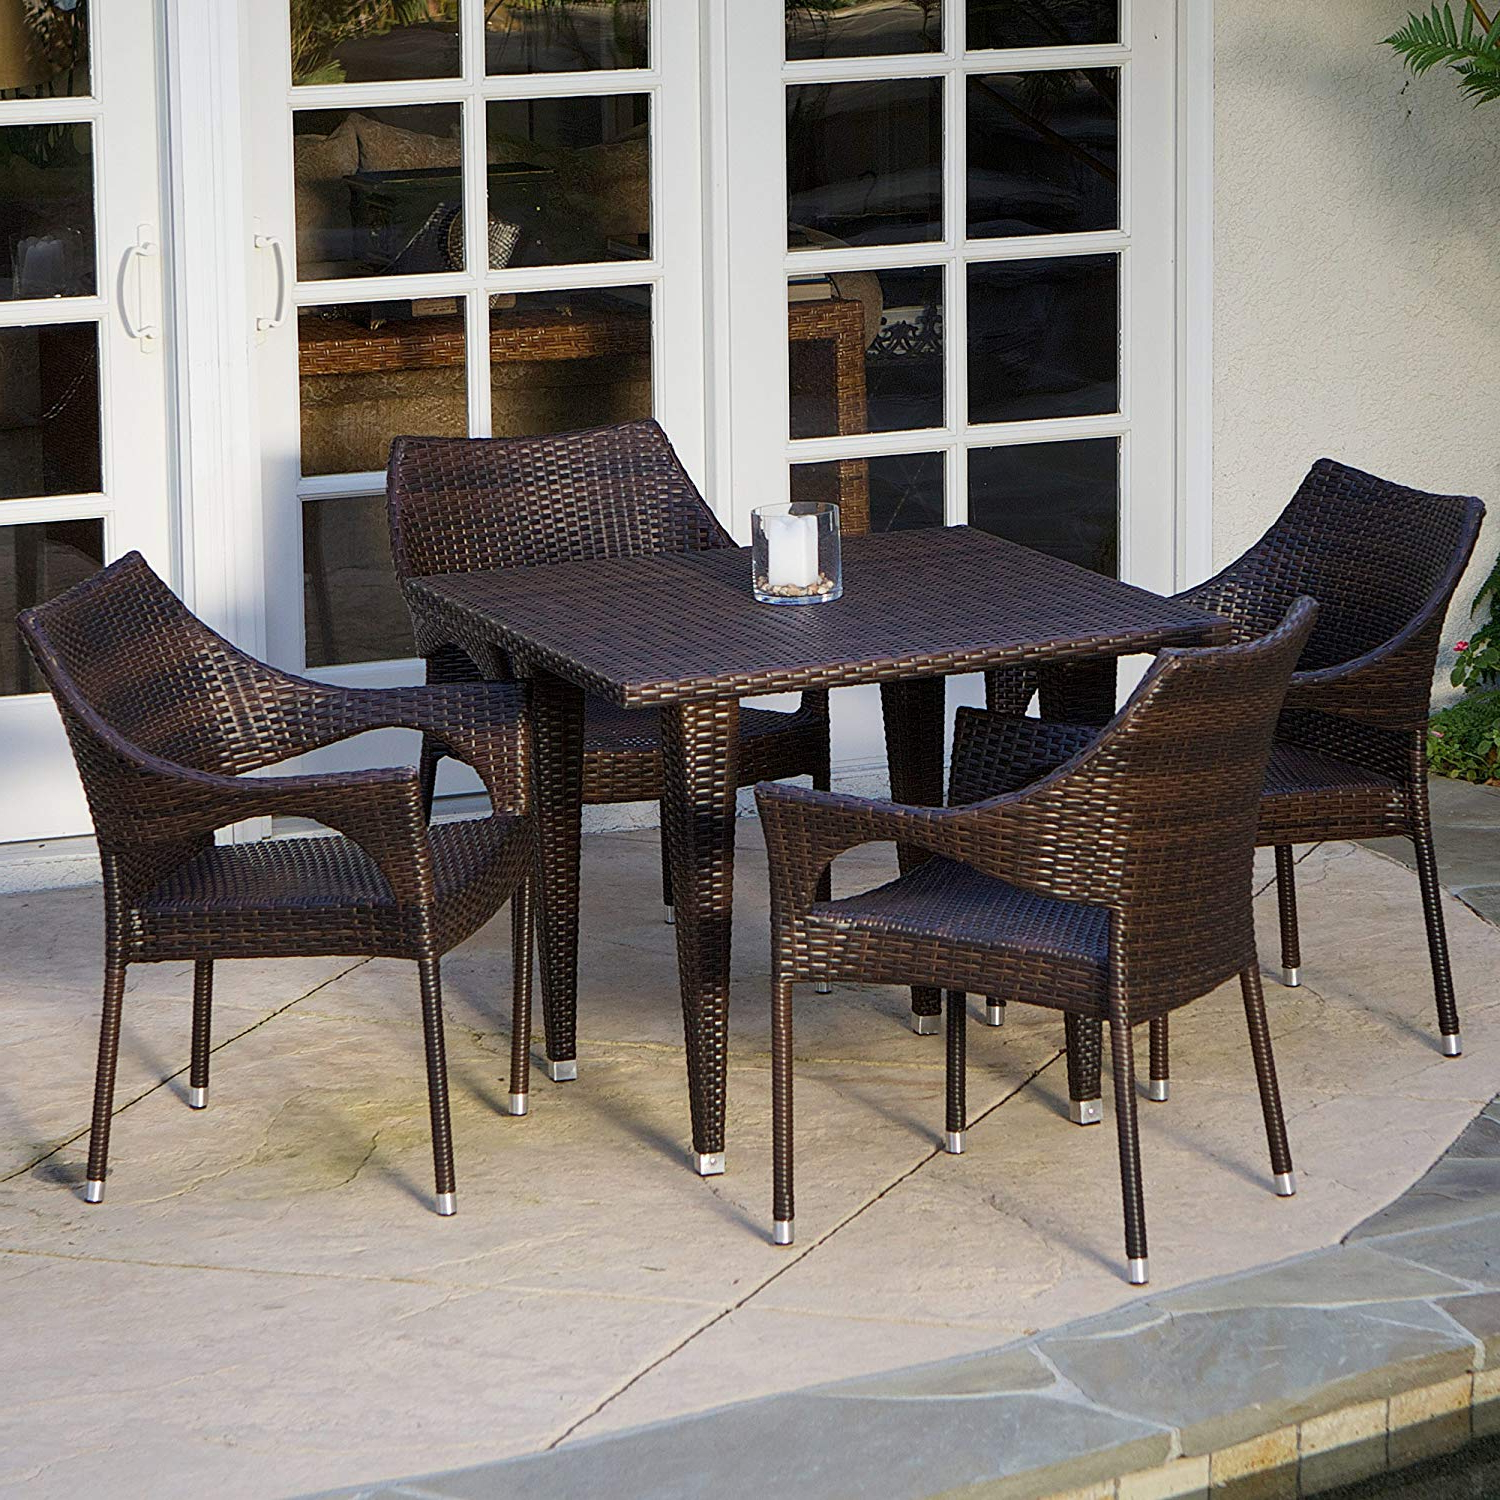 5 Piece Outdoor Wicker Dining Set With Intended For Delmar 5 Piece Dining Sets (Gallery 14 of 25)